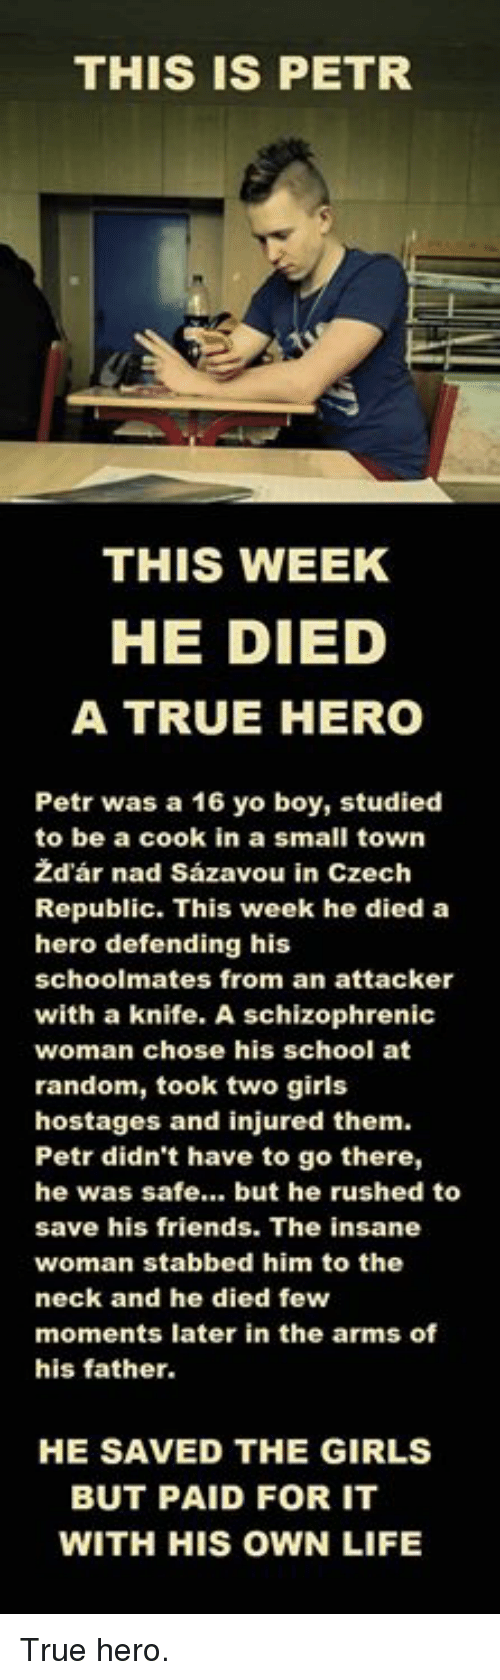 His father is a true hero